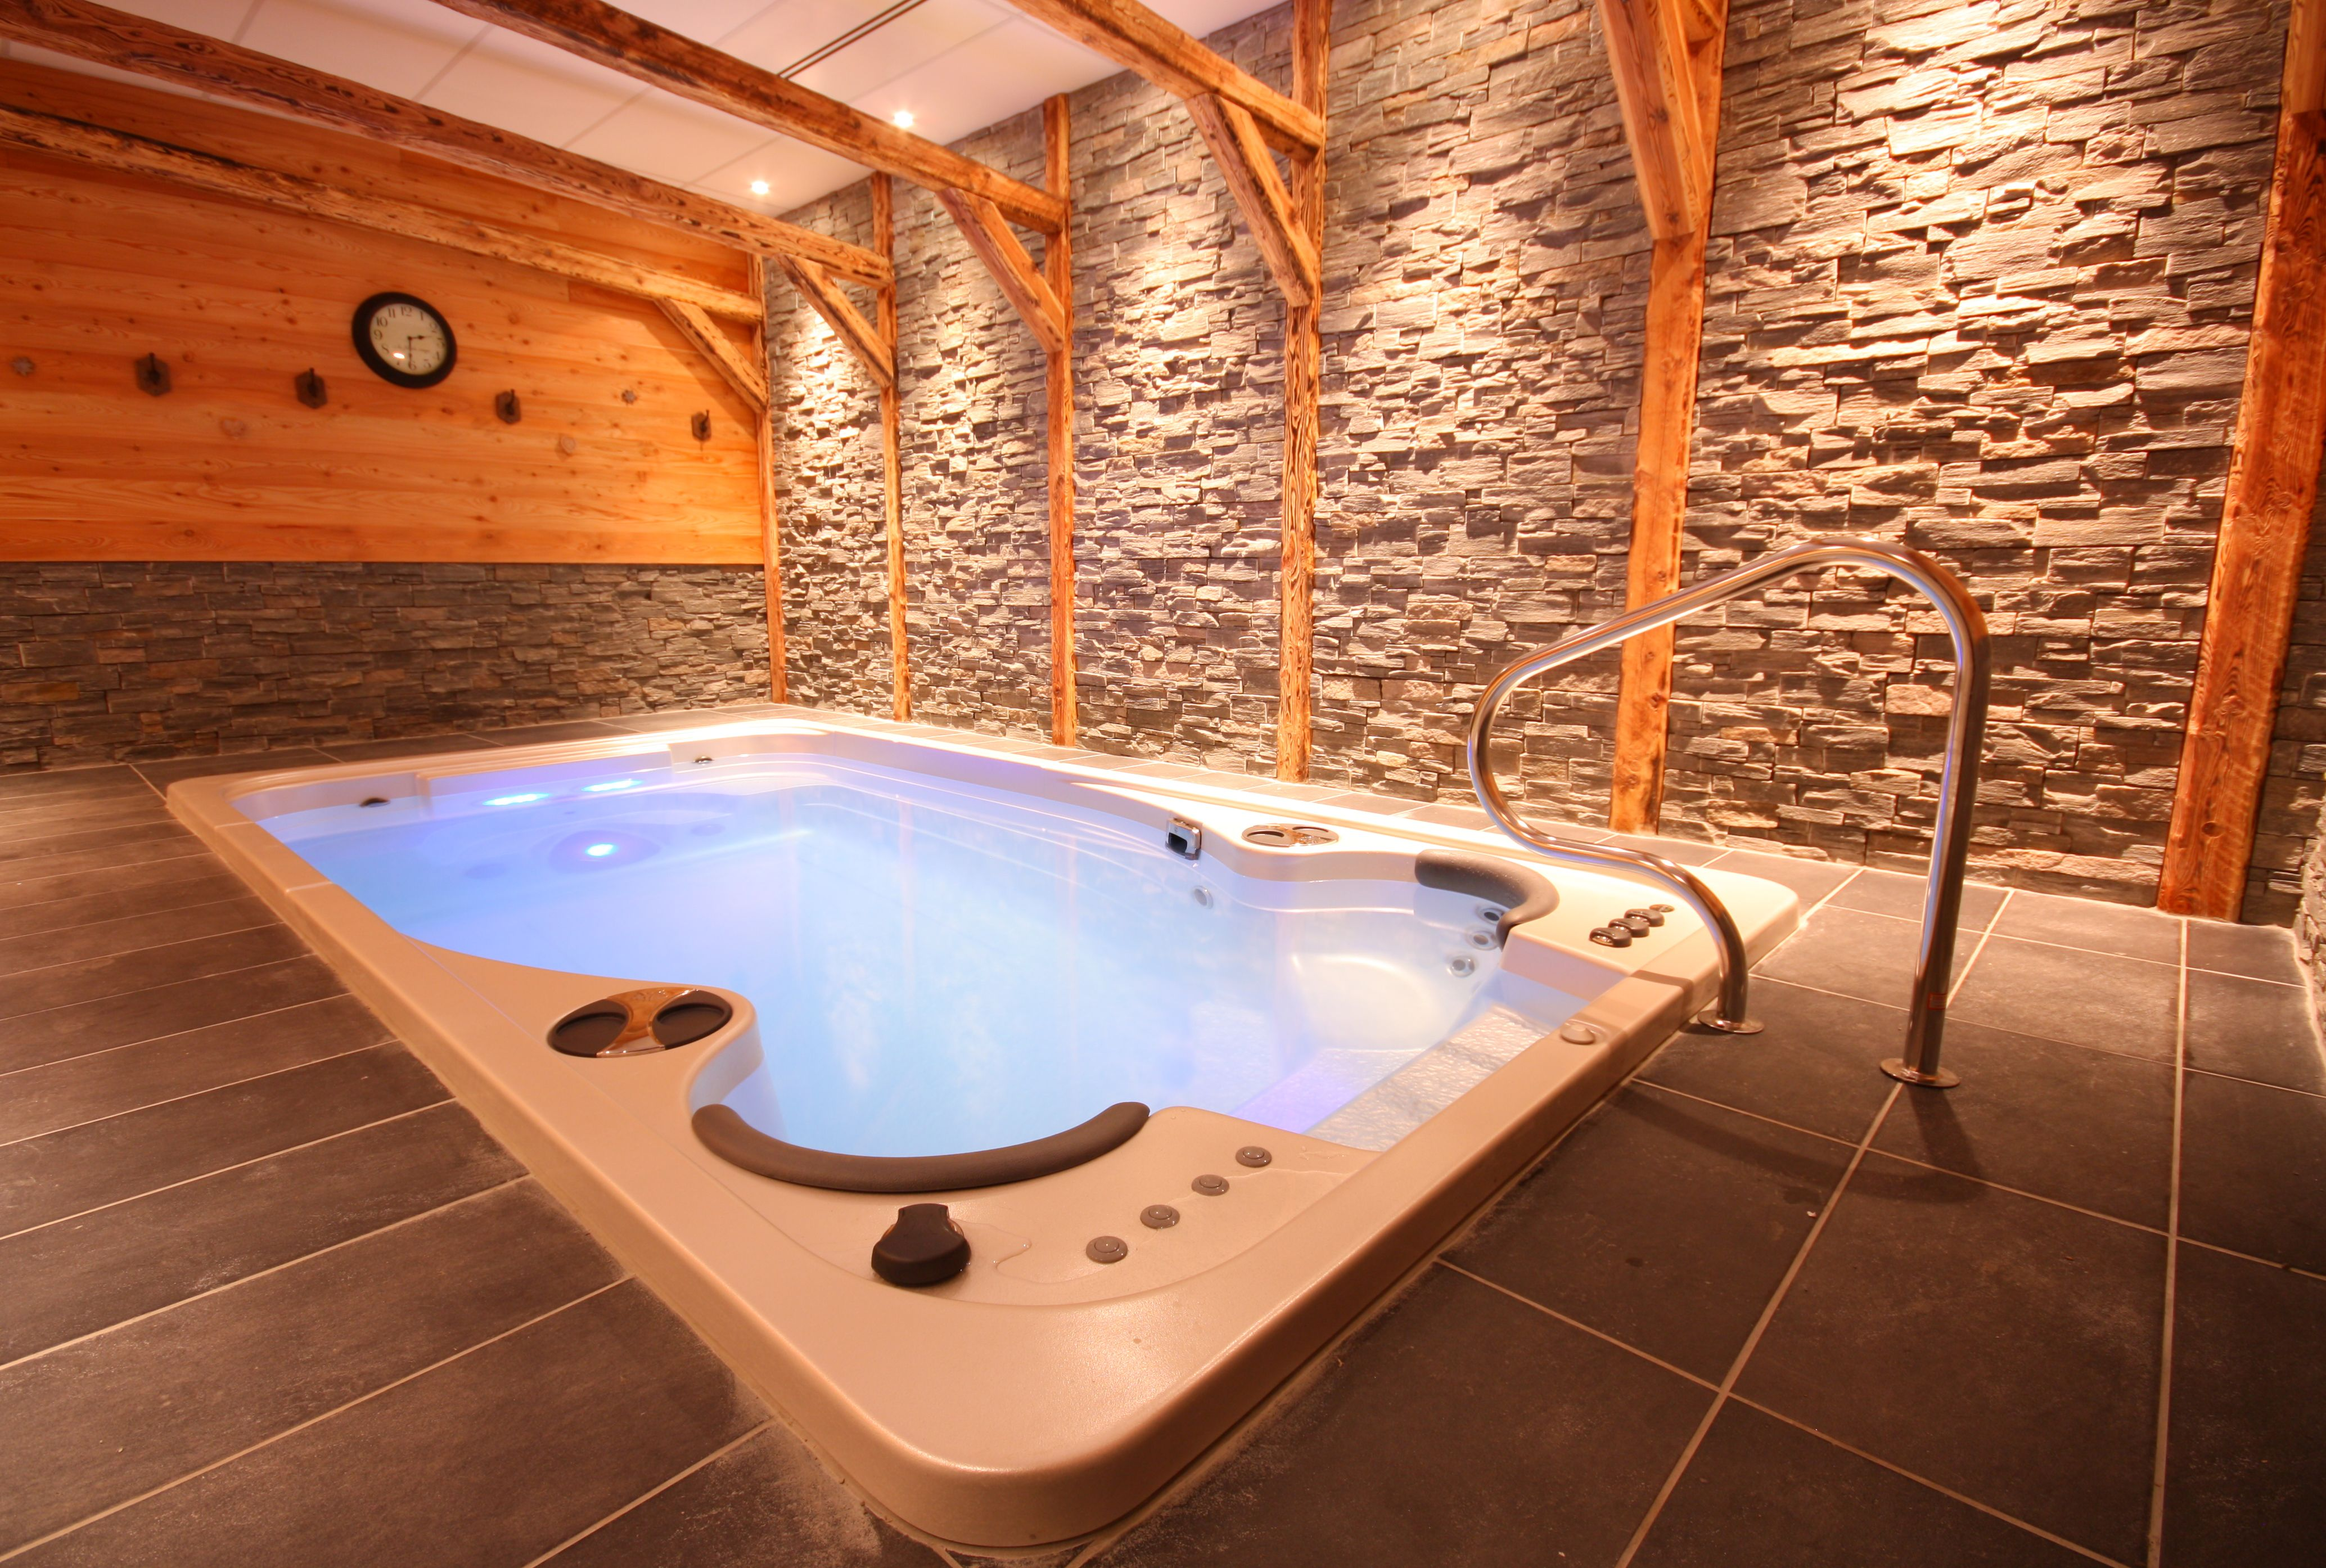 Jacuzzi Pool De Hydropool Self Cleaning Swim Spa Installed Indoors Pool